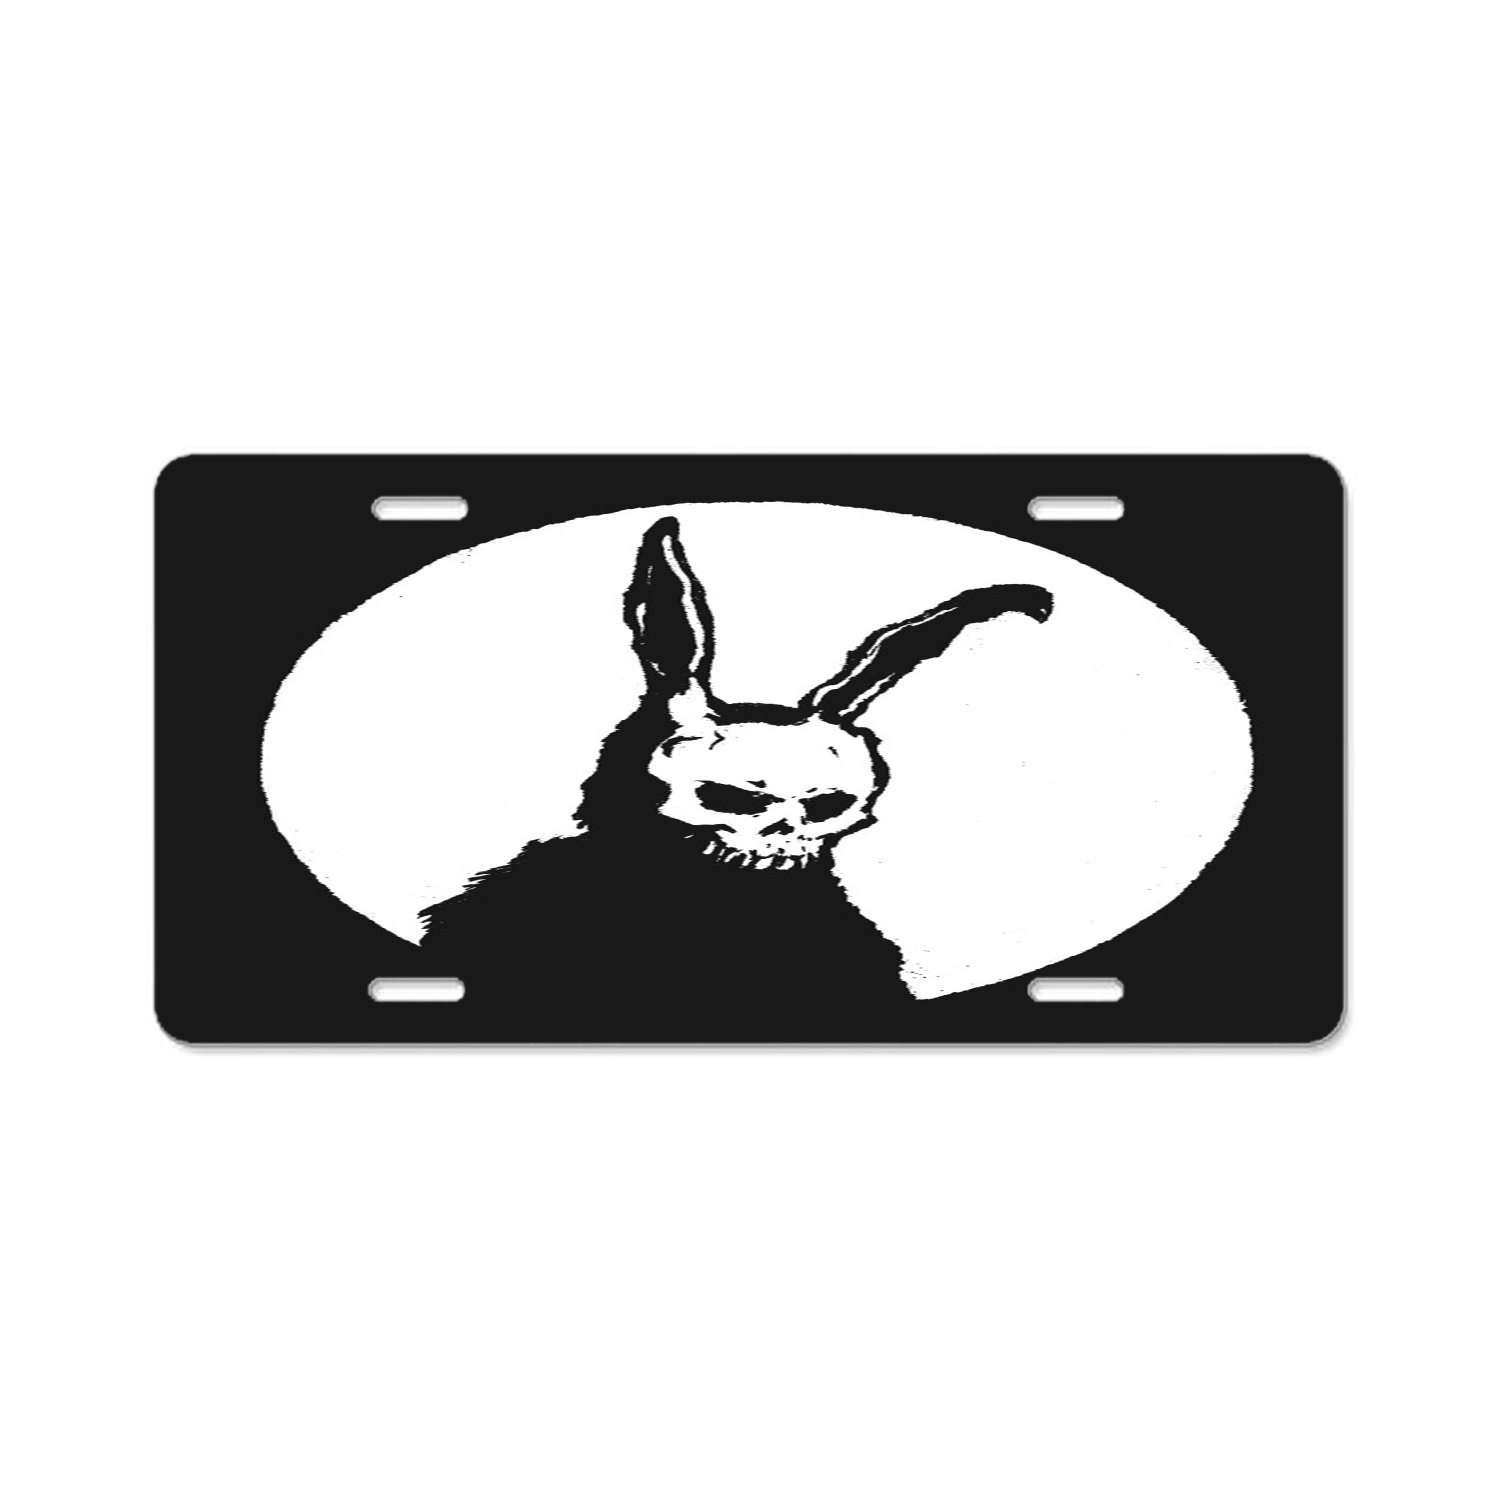 Personalized Name On License Plate Rabbits and viola Custom Auto Car Tag Pulongpoq